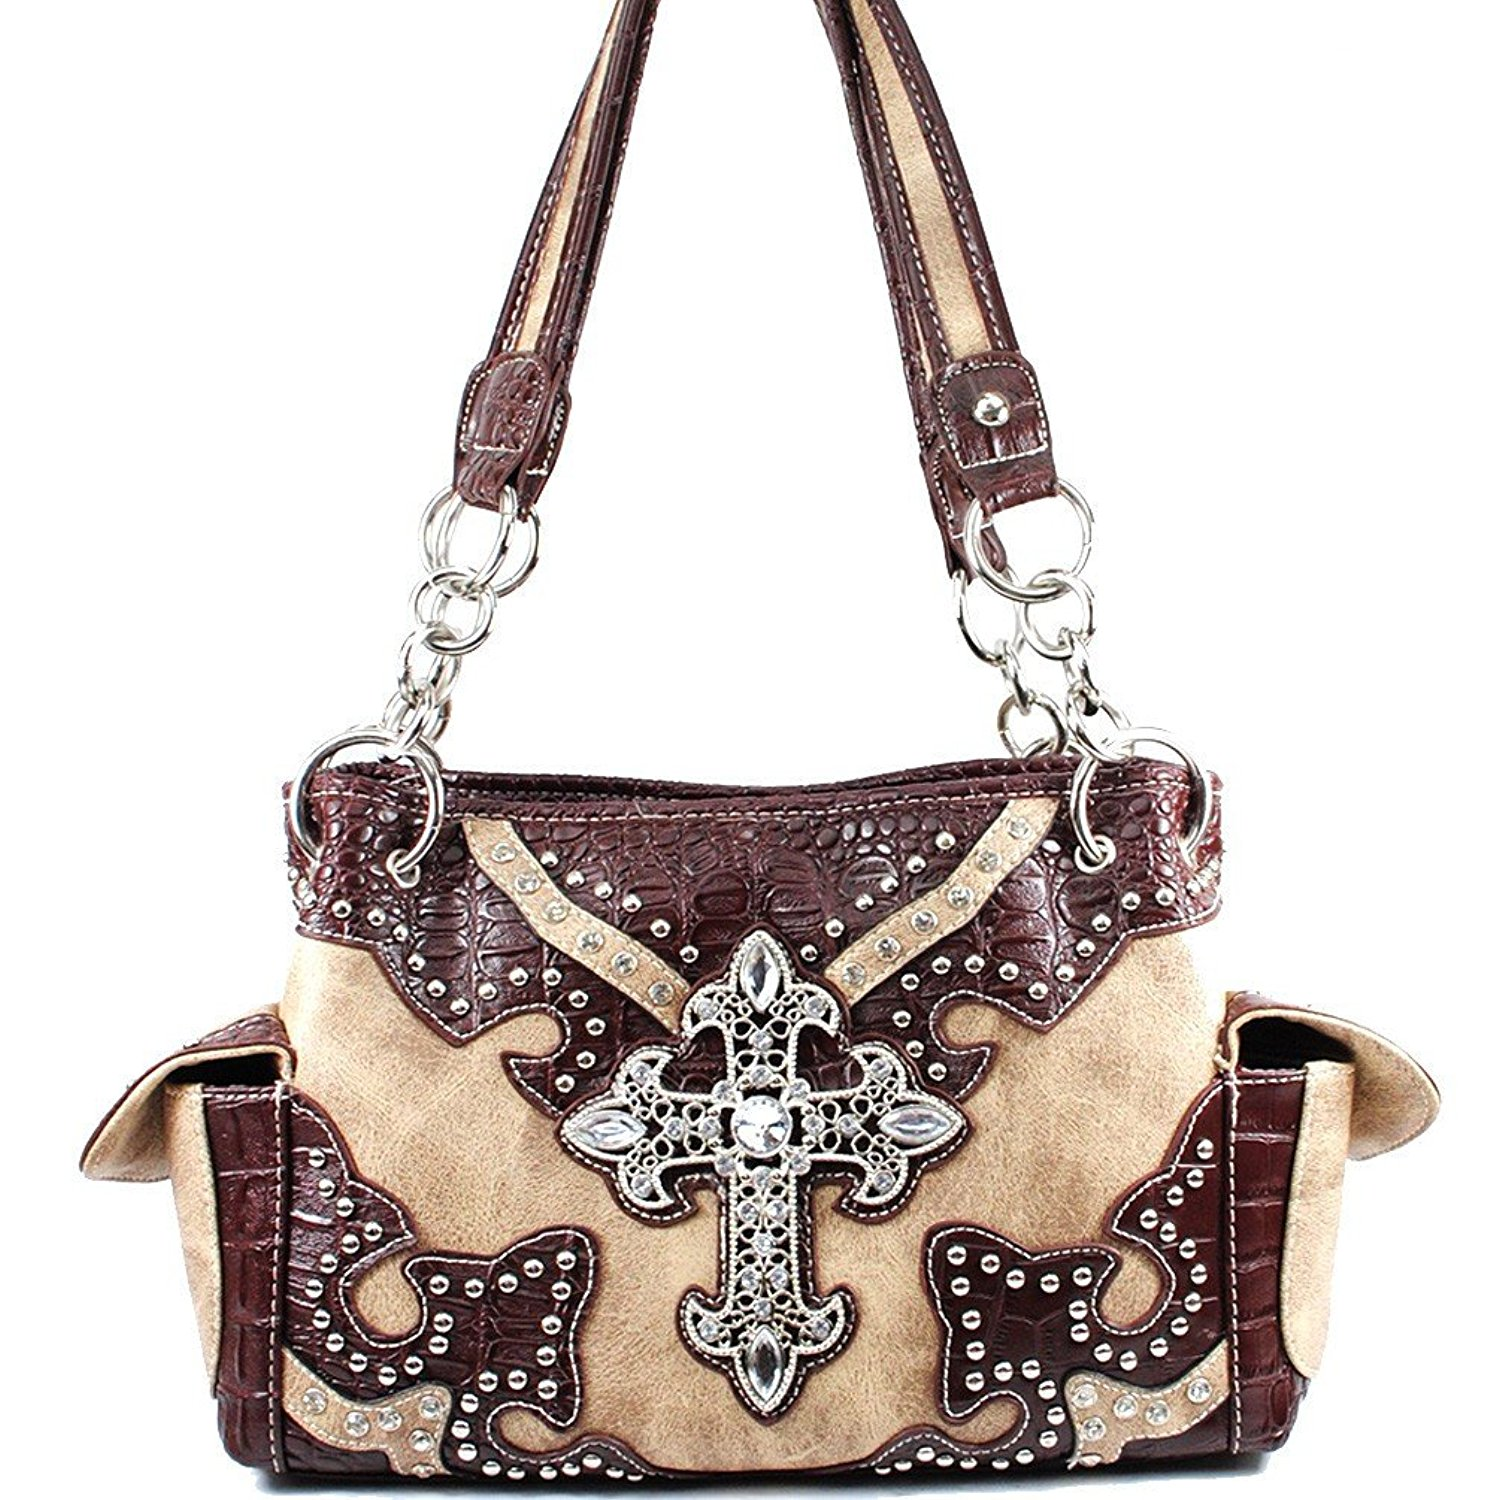 Get Quotations · Rhinestone Cross Concealed Carry Embroidered Shoulder Handbag  Purse in Multi Colors. f1643609fac42